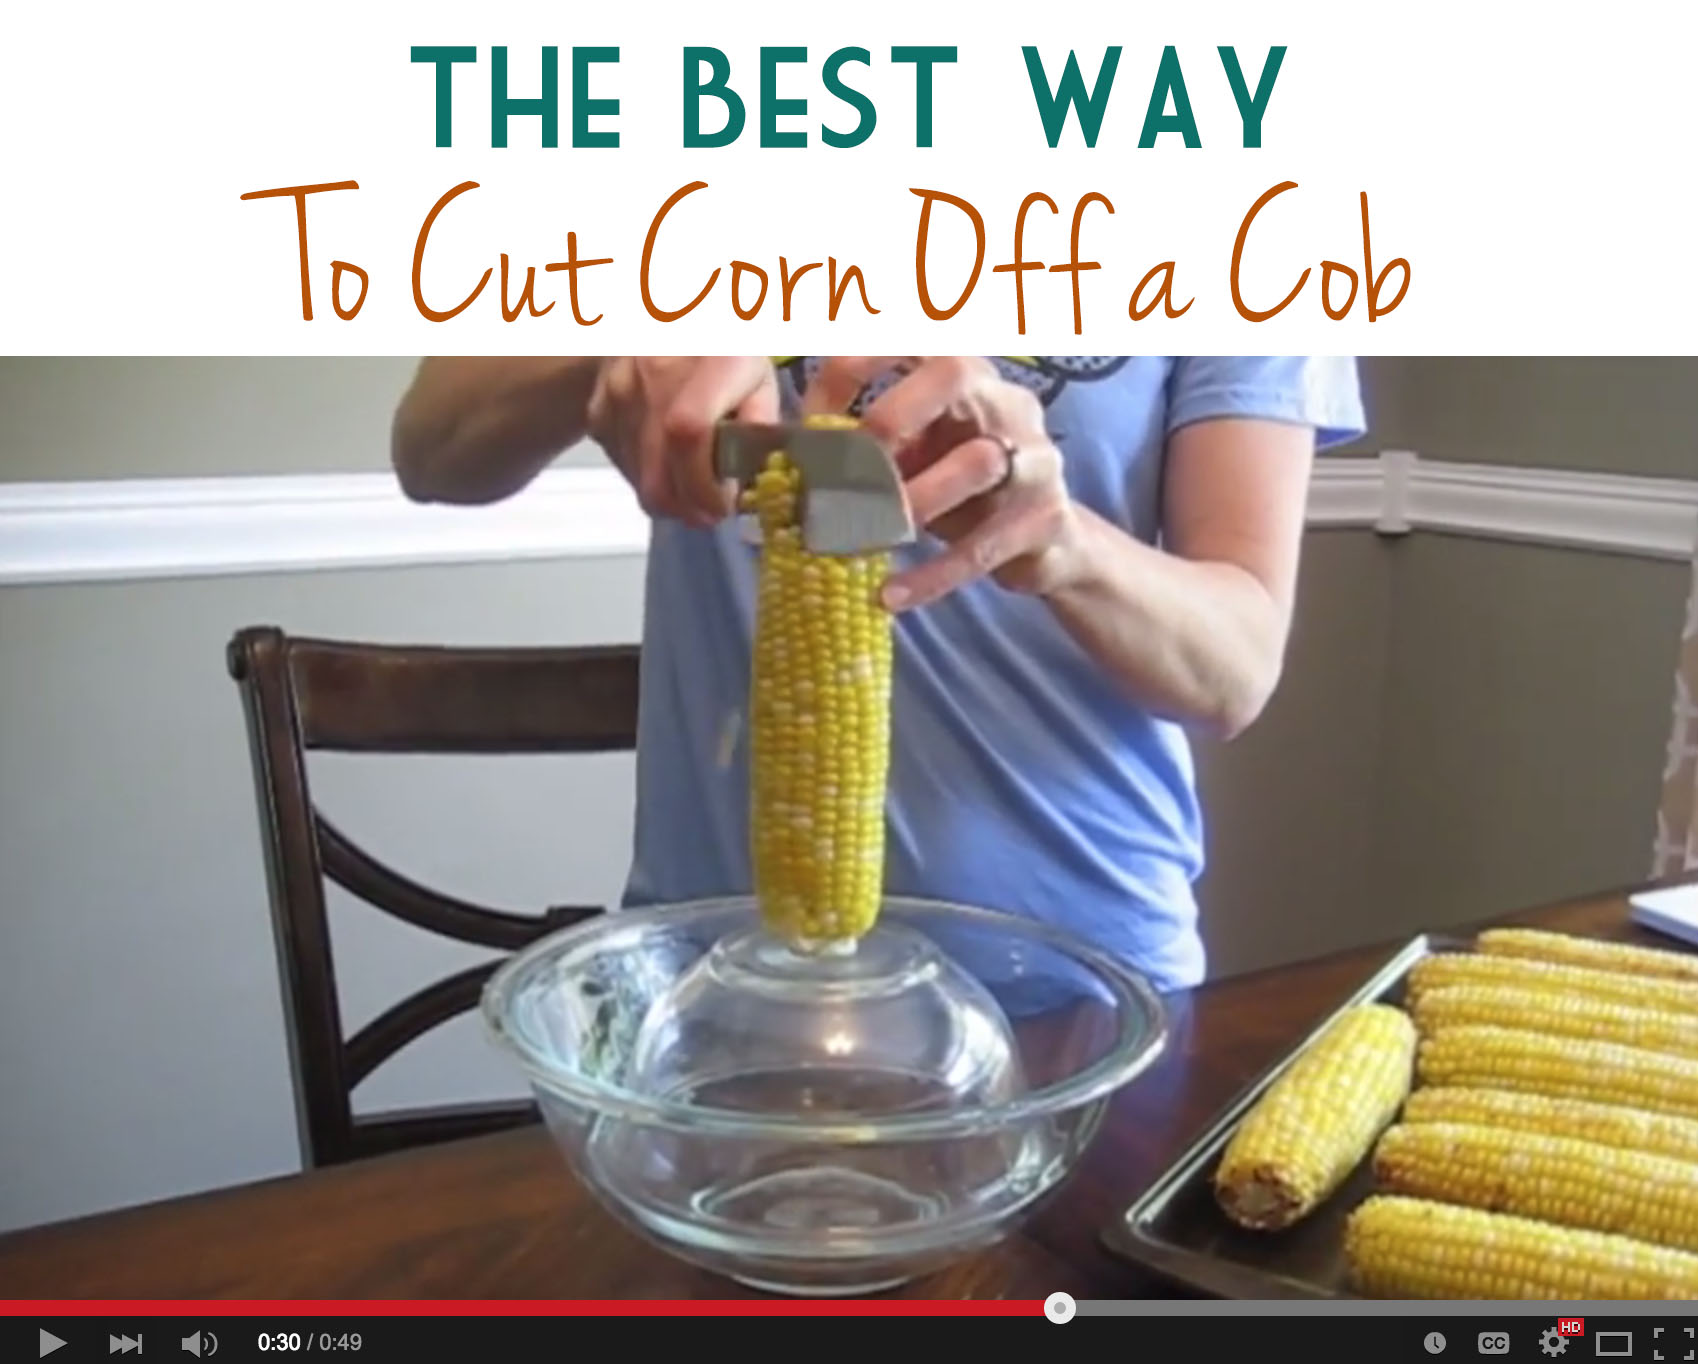 This trick really is the best way to cut corn off the cob, because it saves making a big mess on the counter and floor.